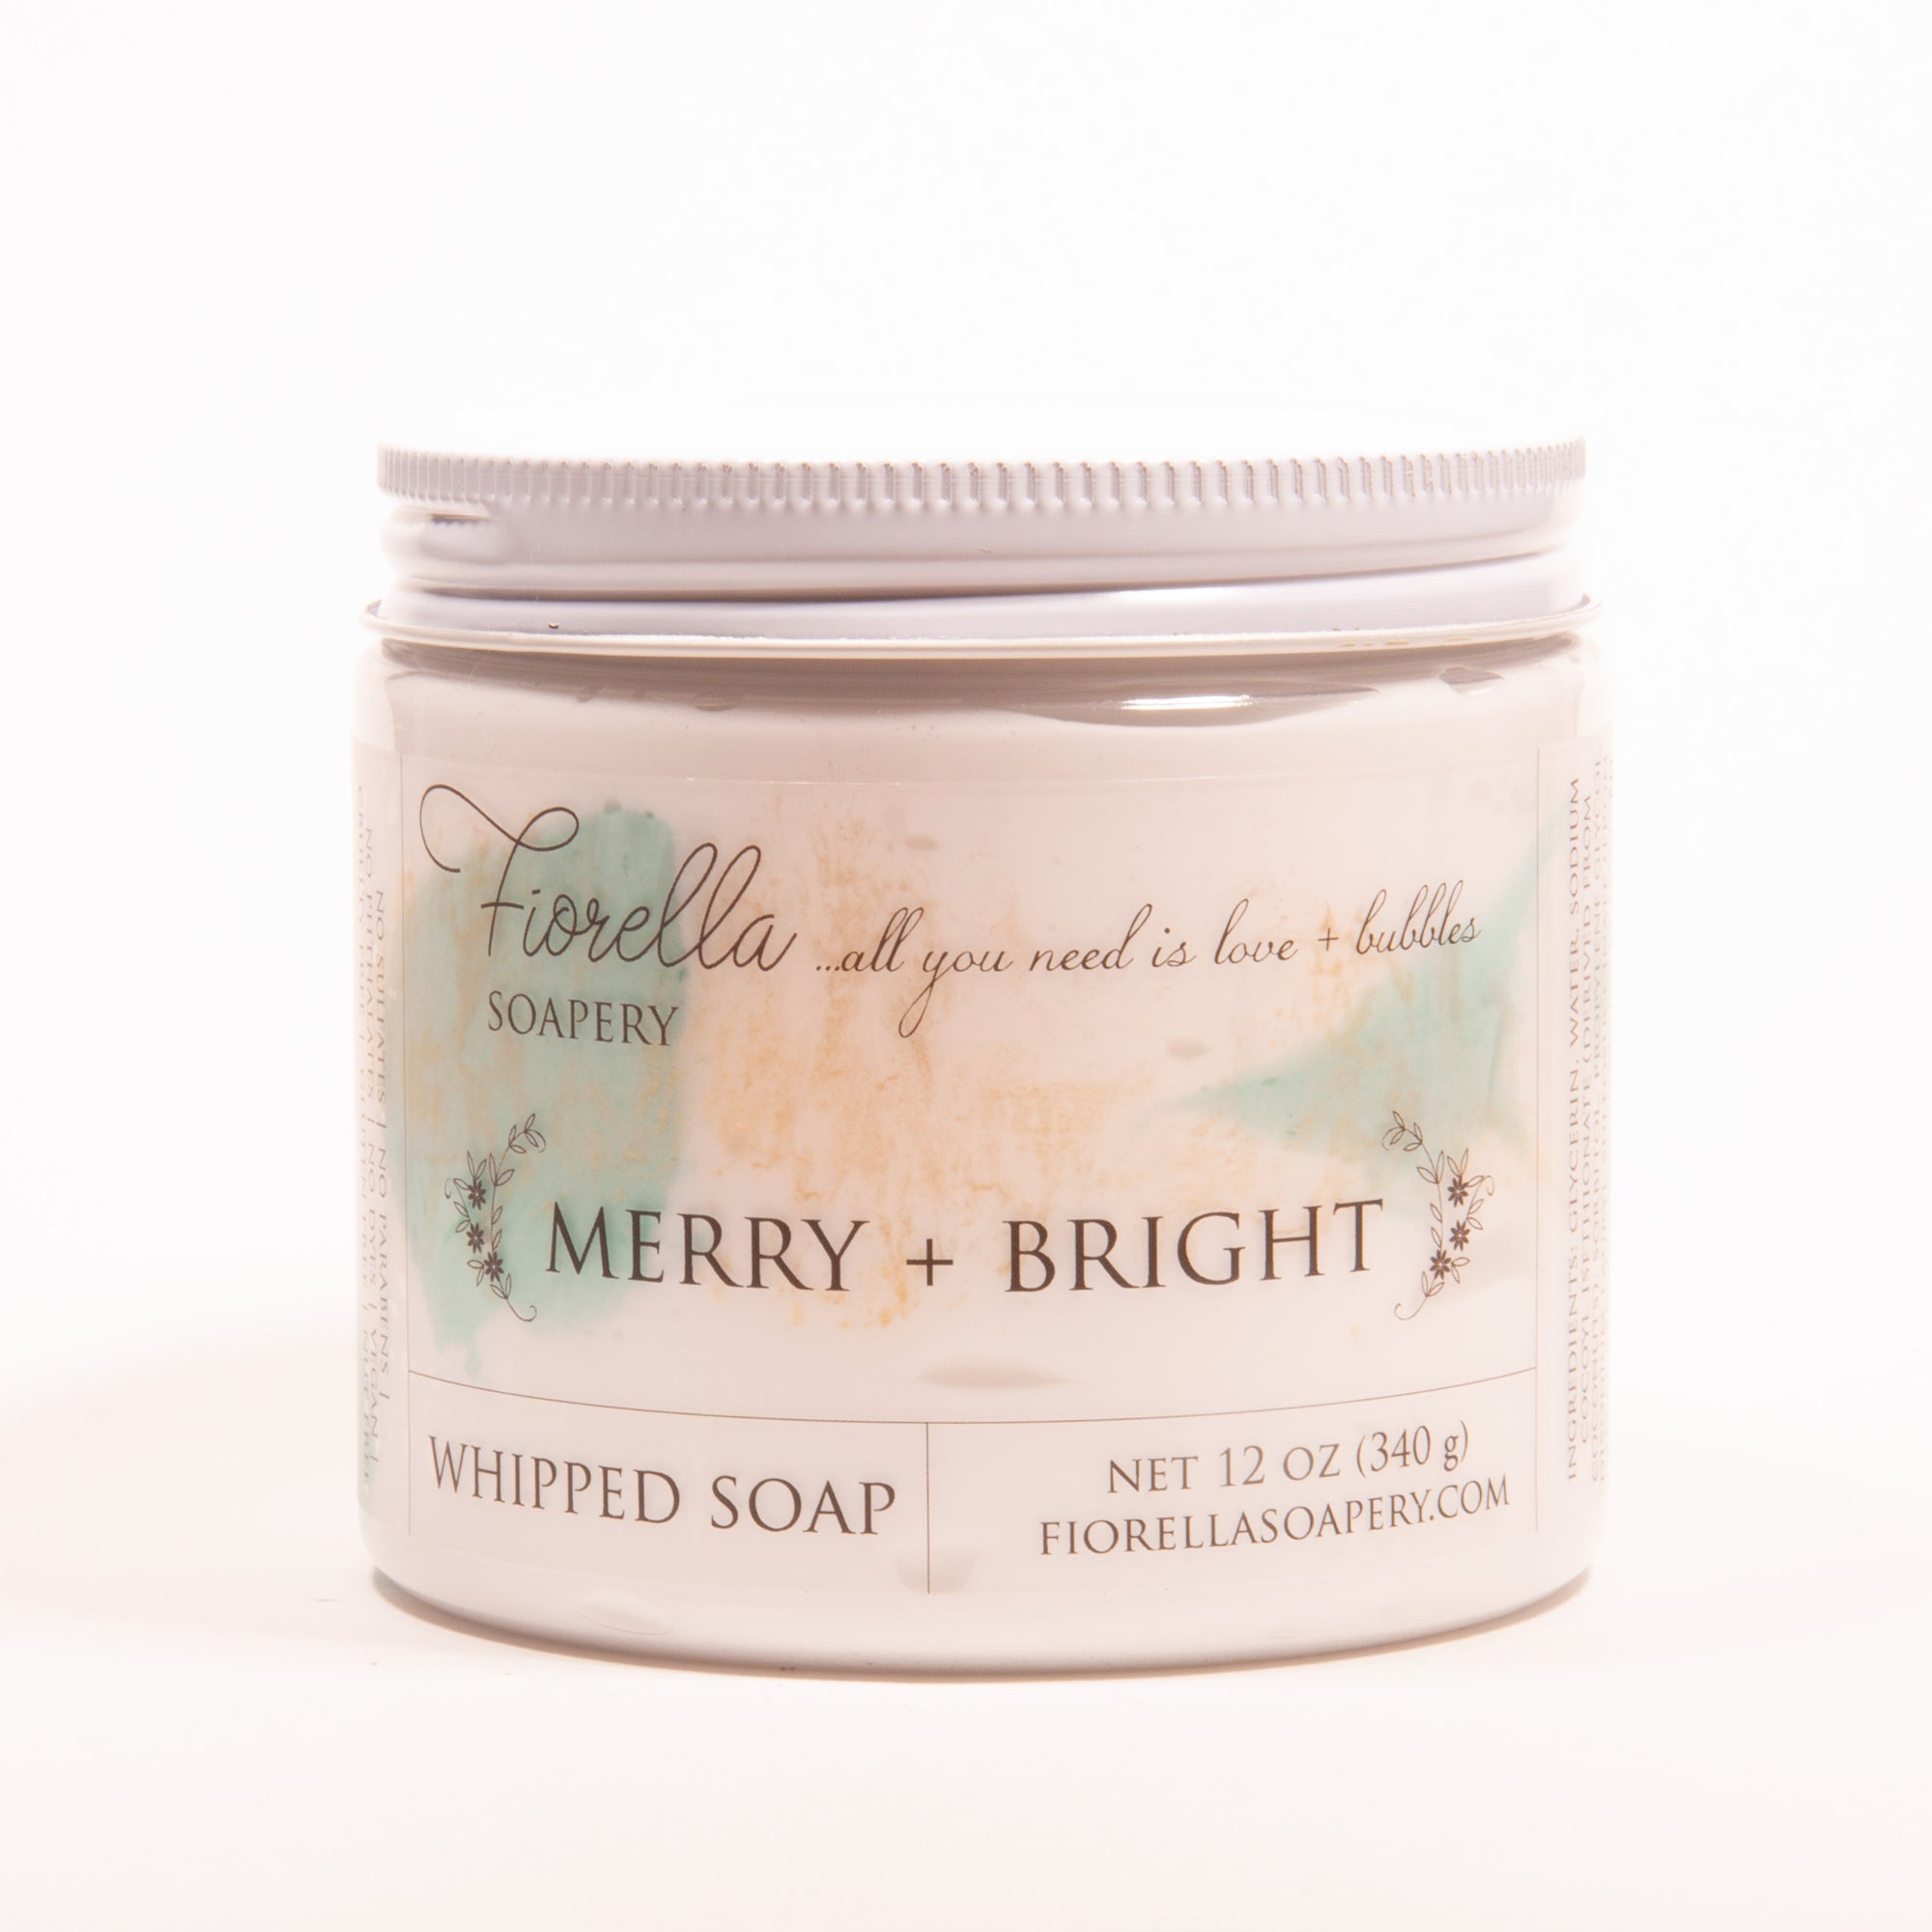 Merry + Bright Whipped Soap